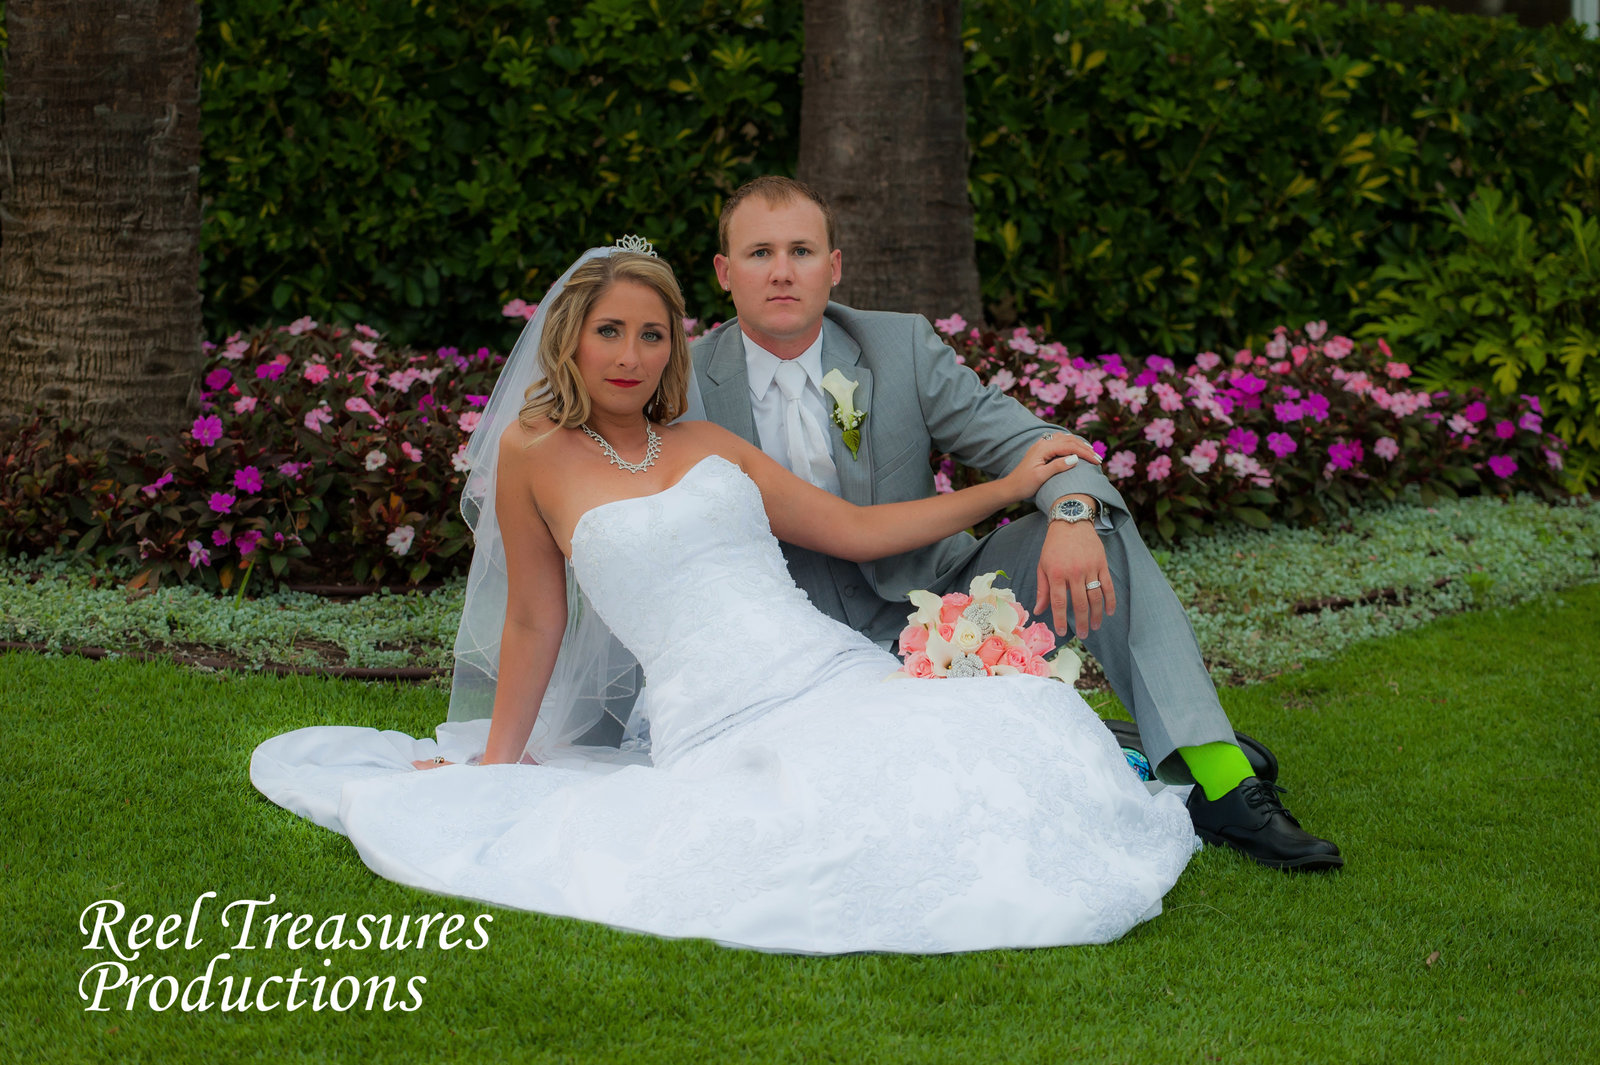 Whether its an intimate beach wedding or a large formal wedding at one of Florida's famous resorts, we will work with you to create the scenes and moments that will last an entire lifetime.